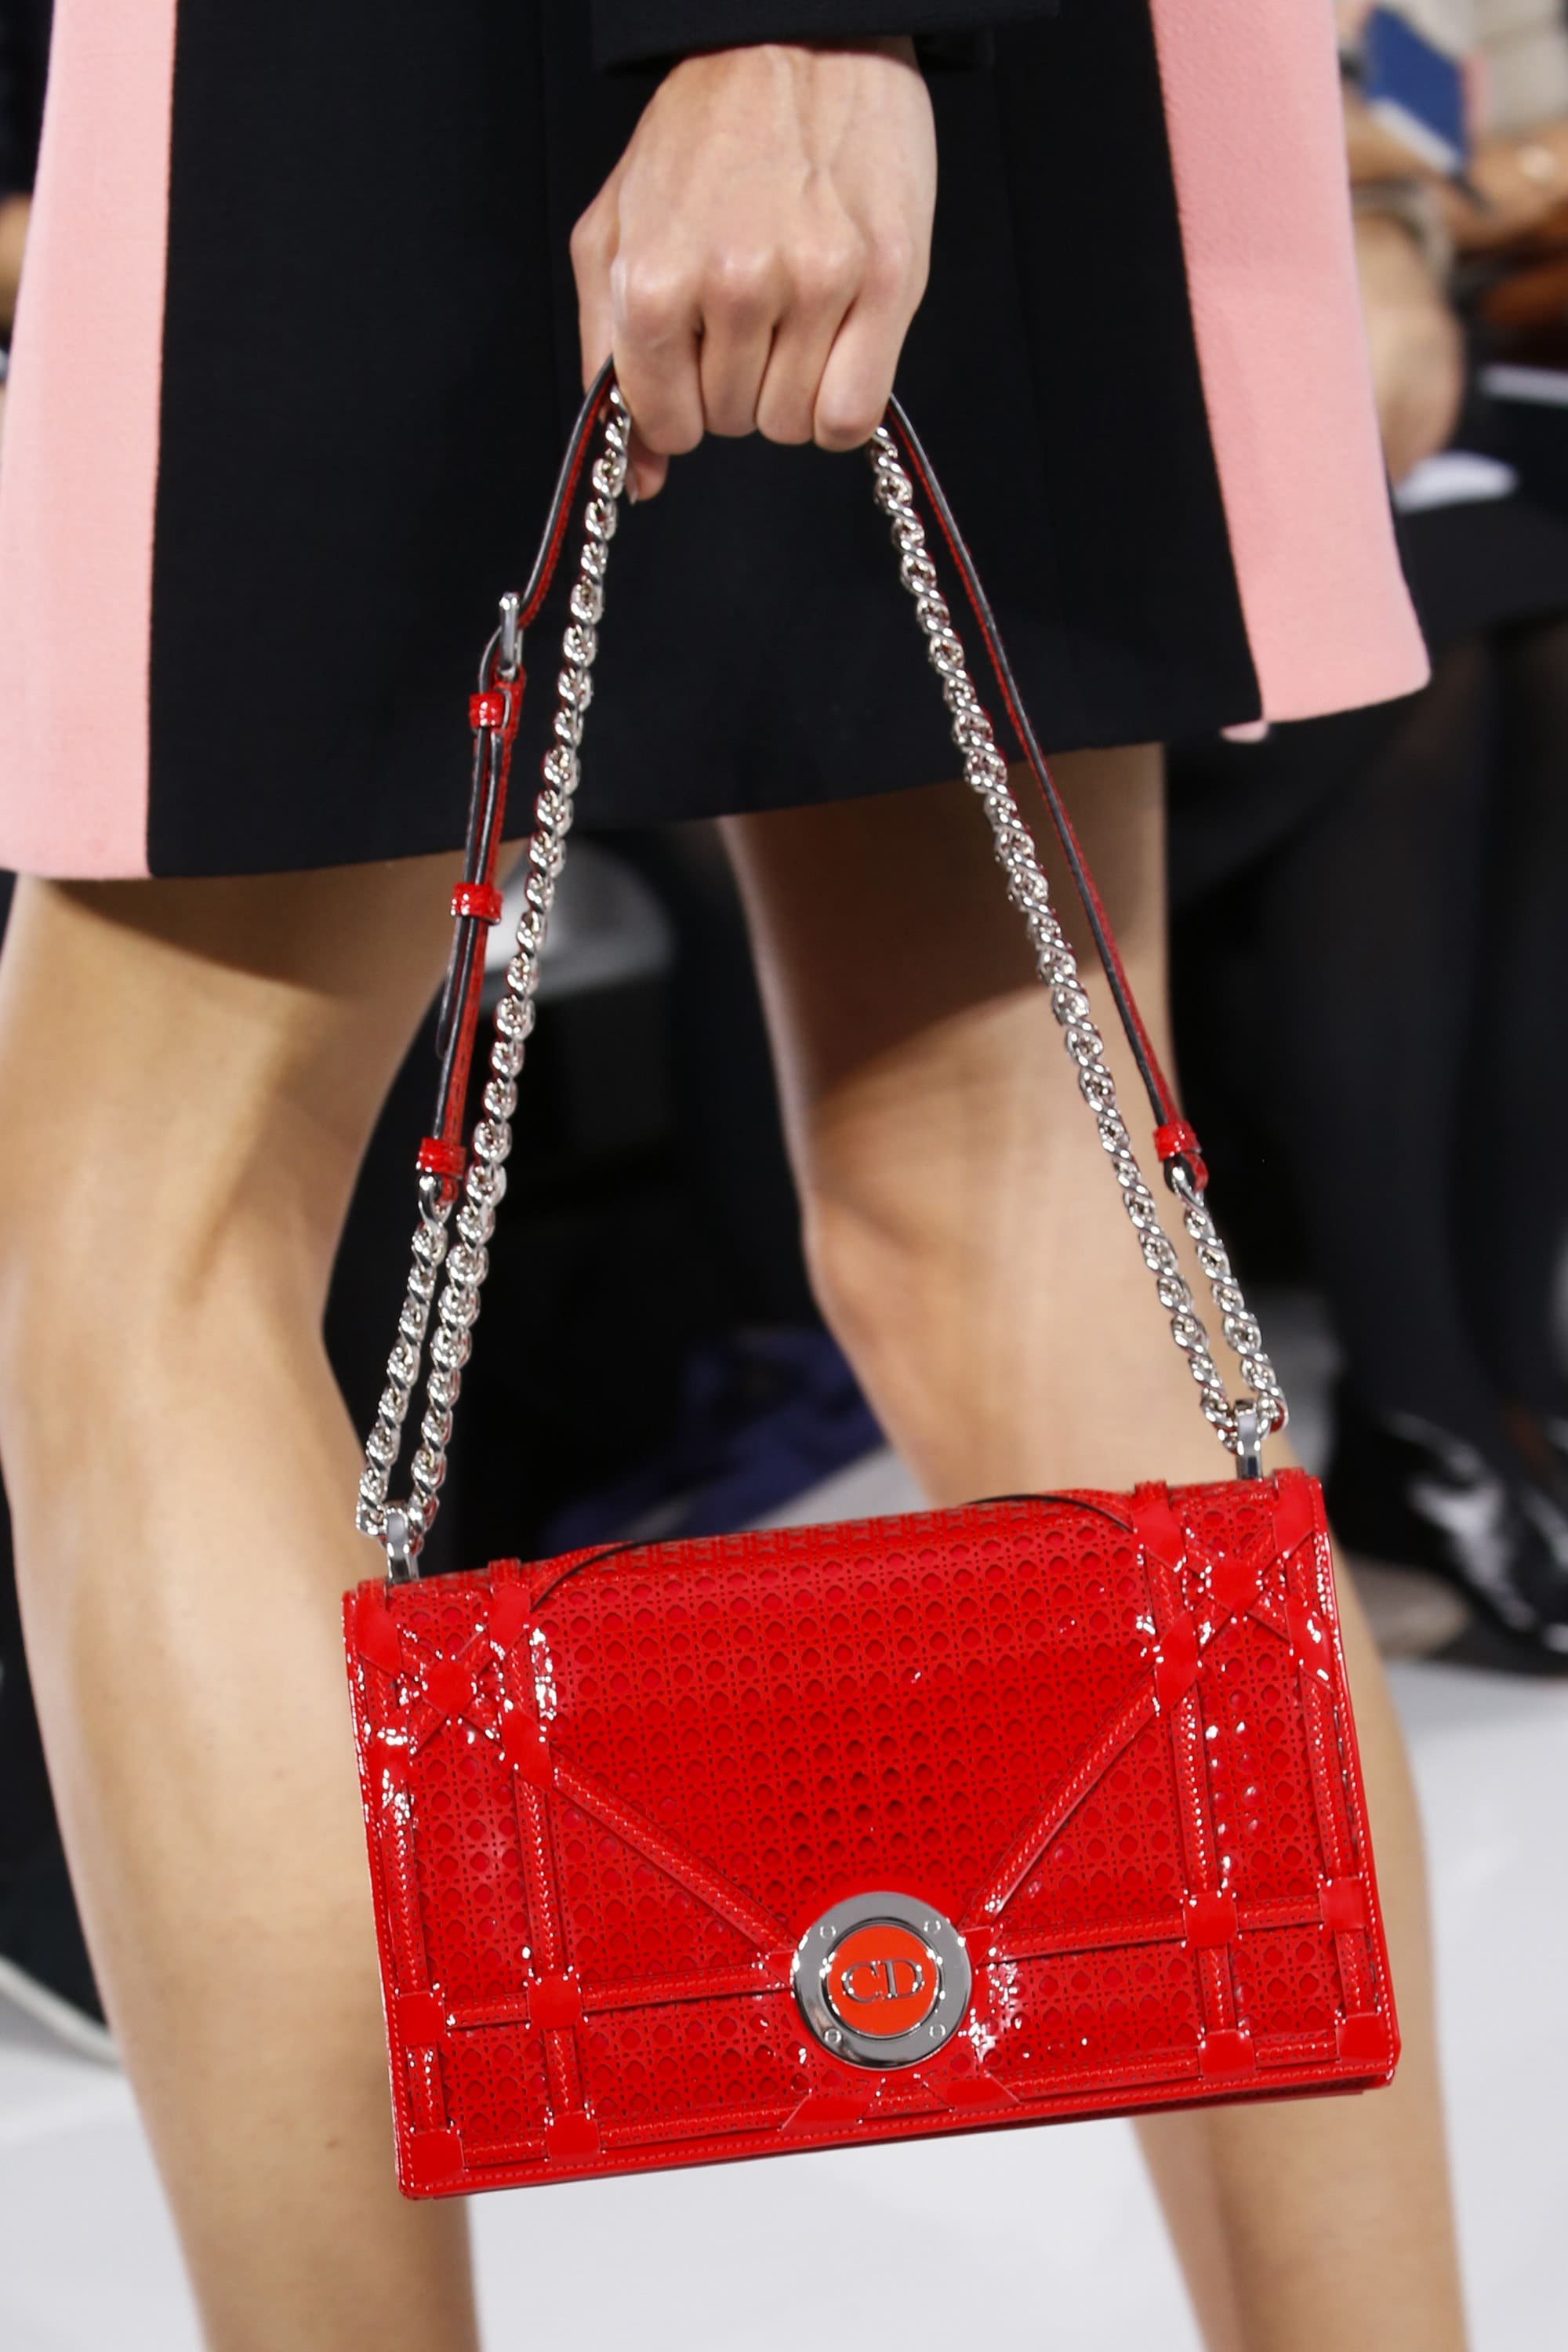 Dior Spring/Summer 2016 Runway Bag Collection Featuring A ...